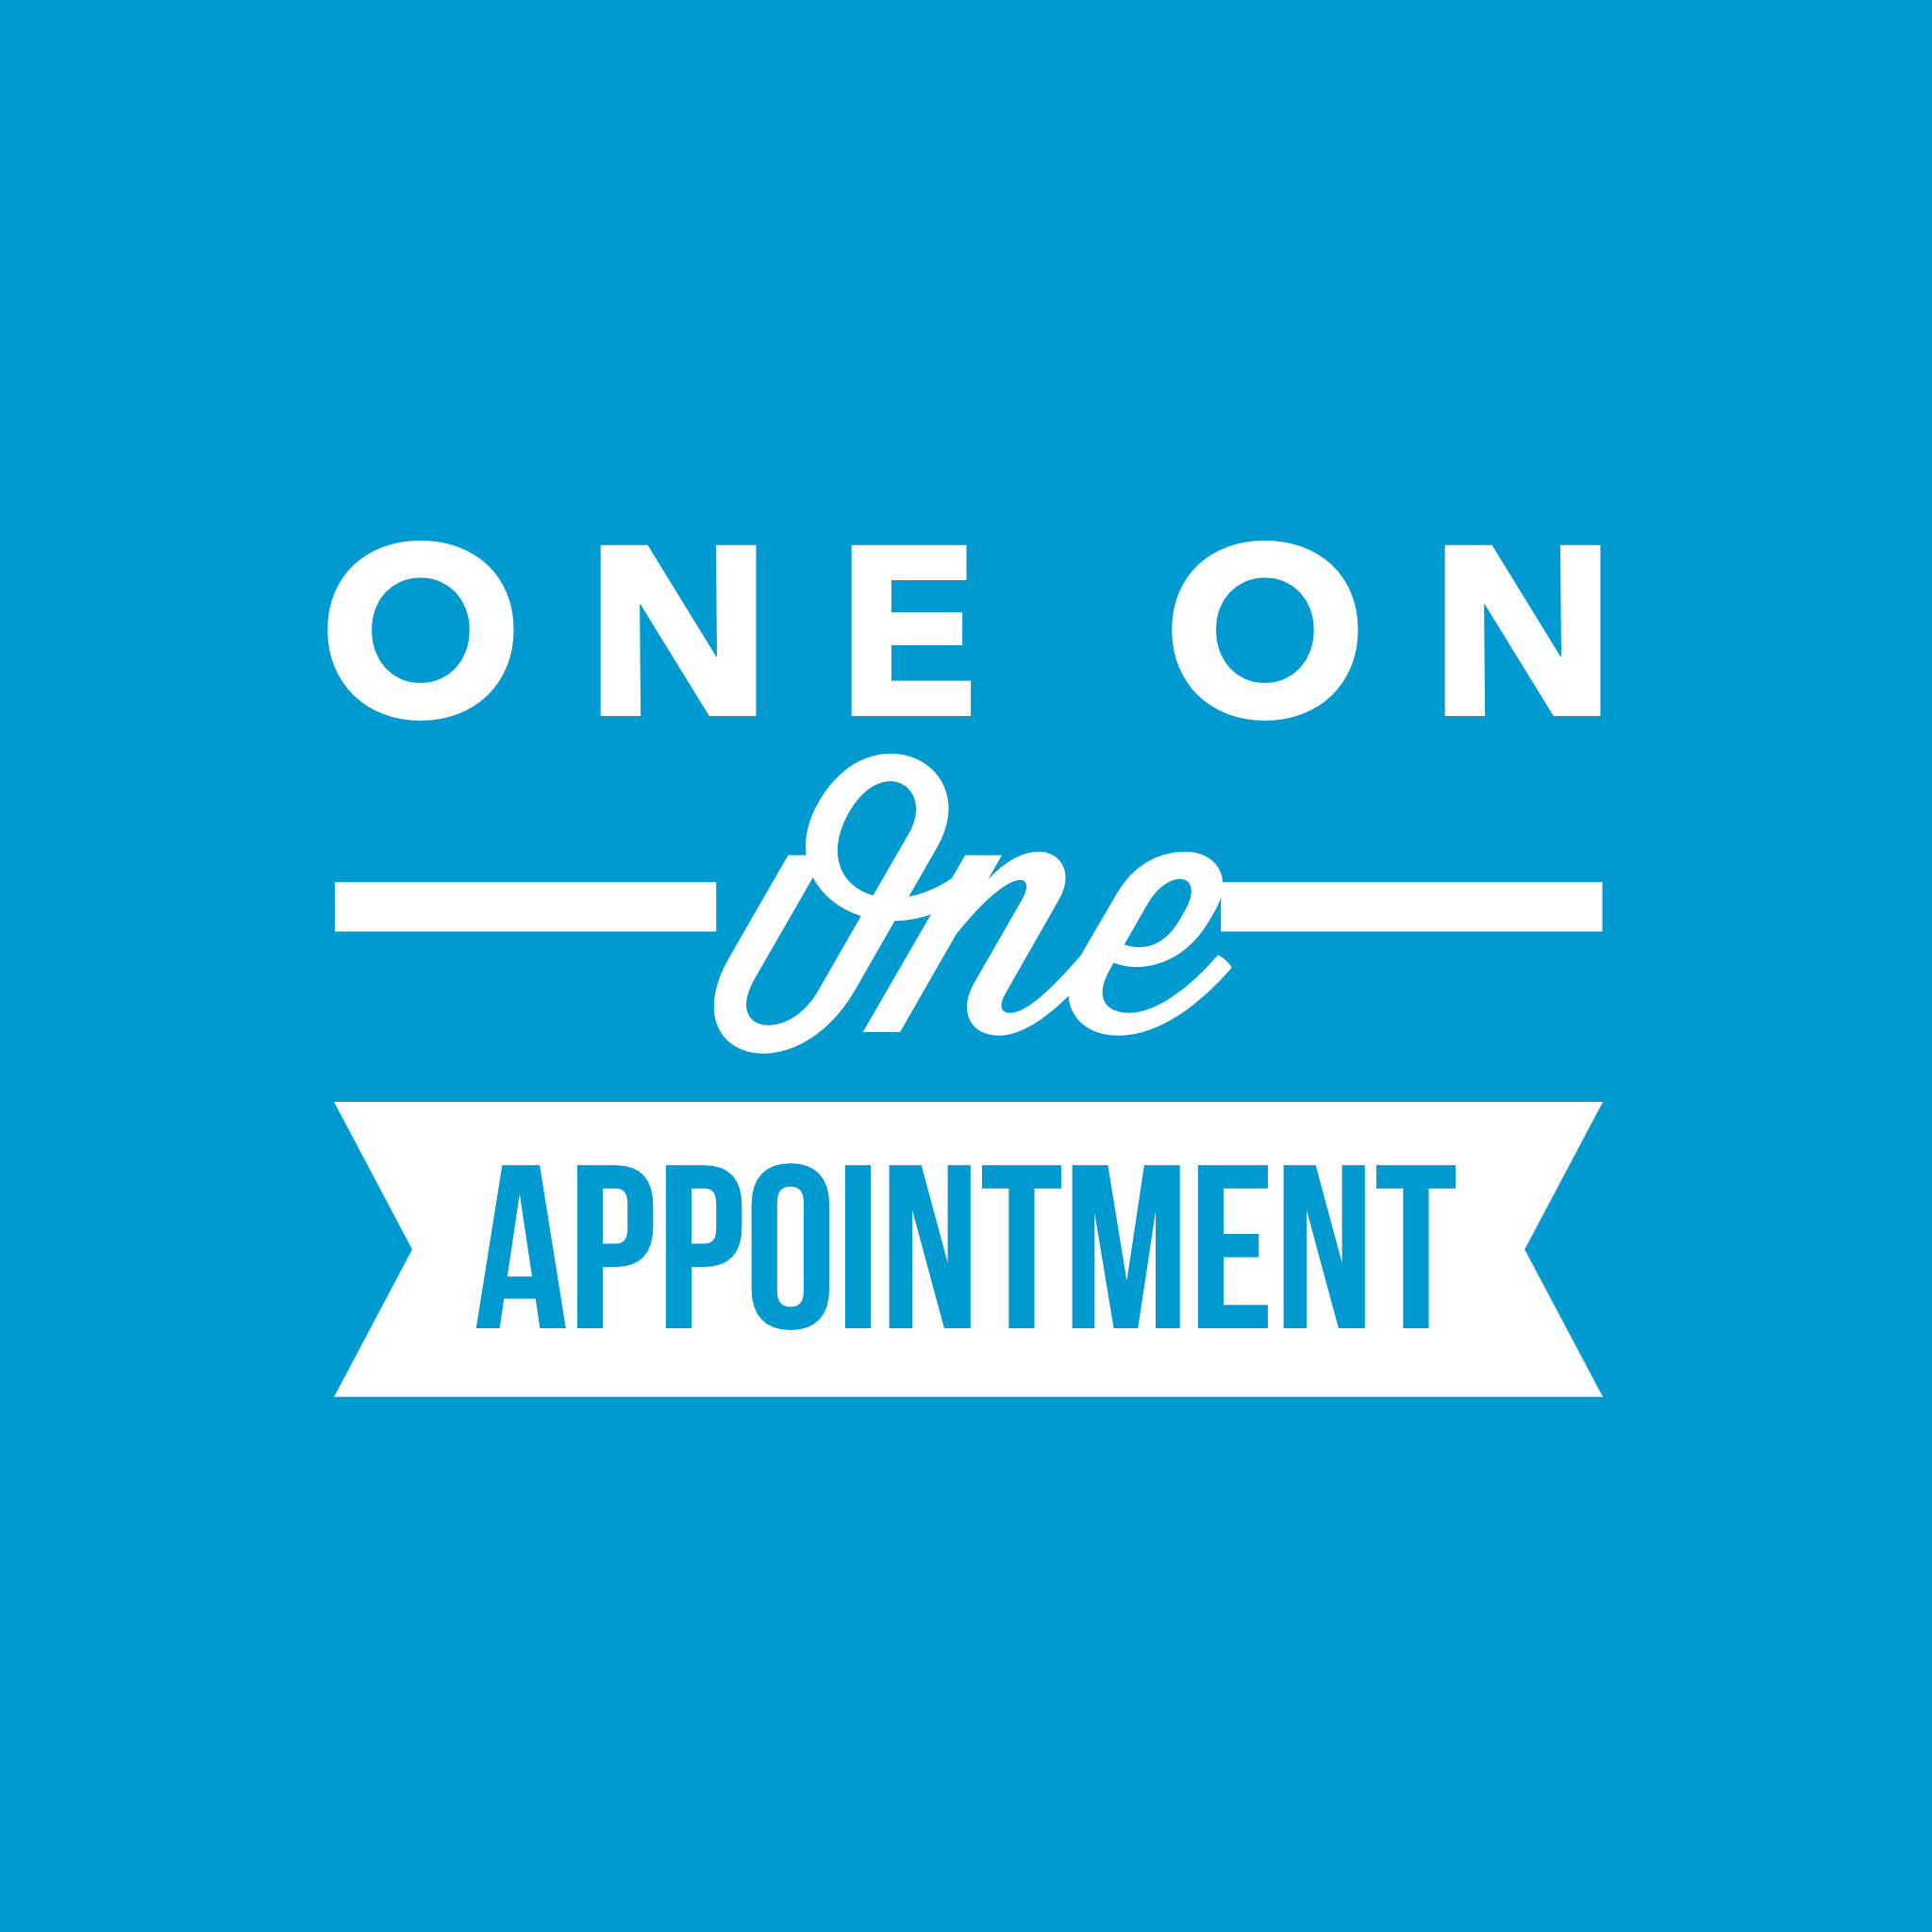 One on One Appointment